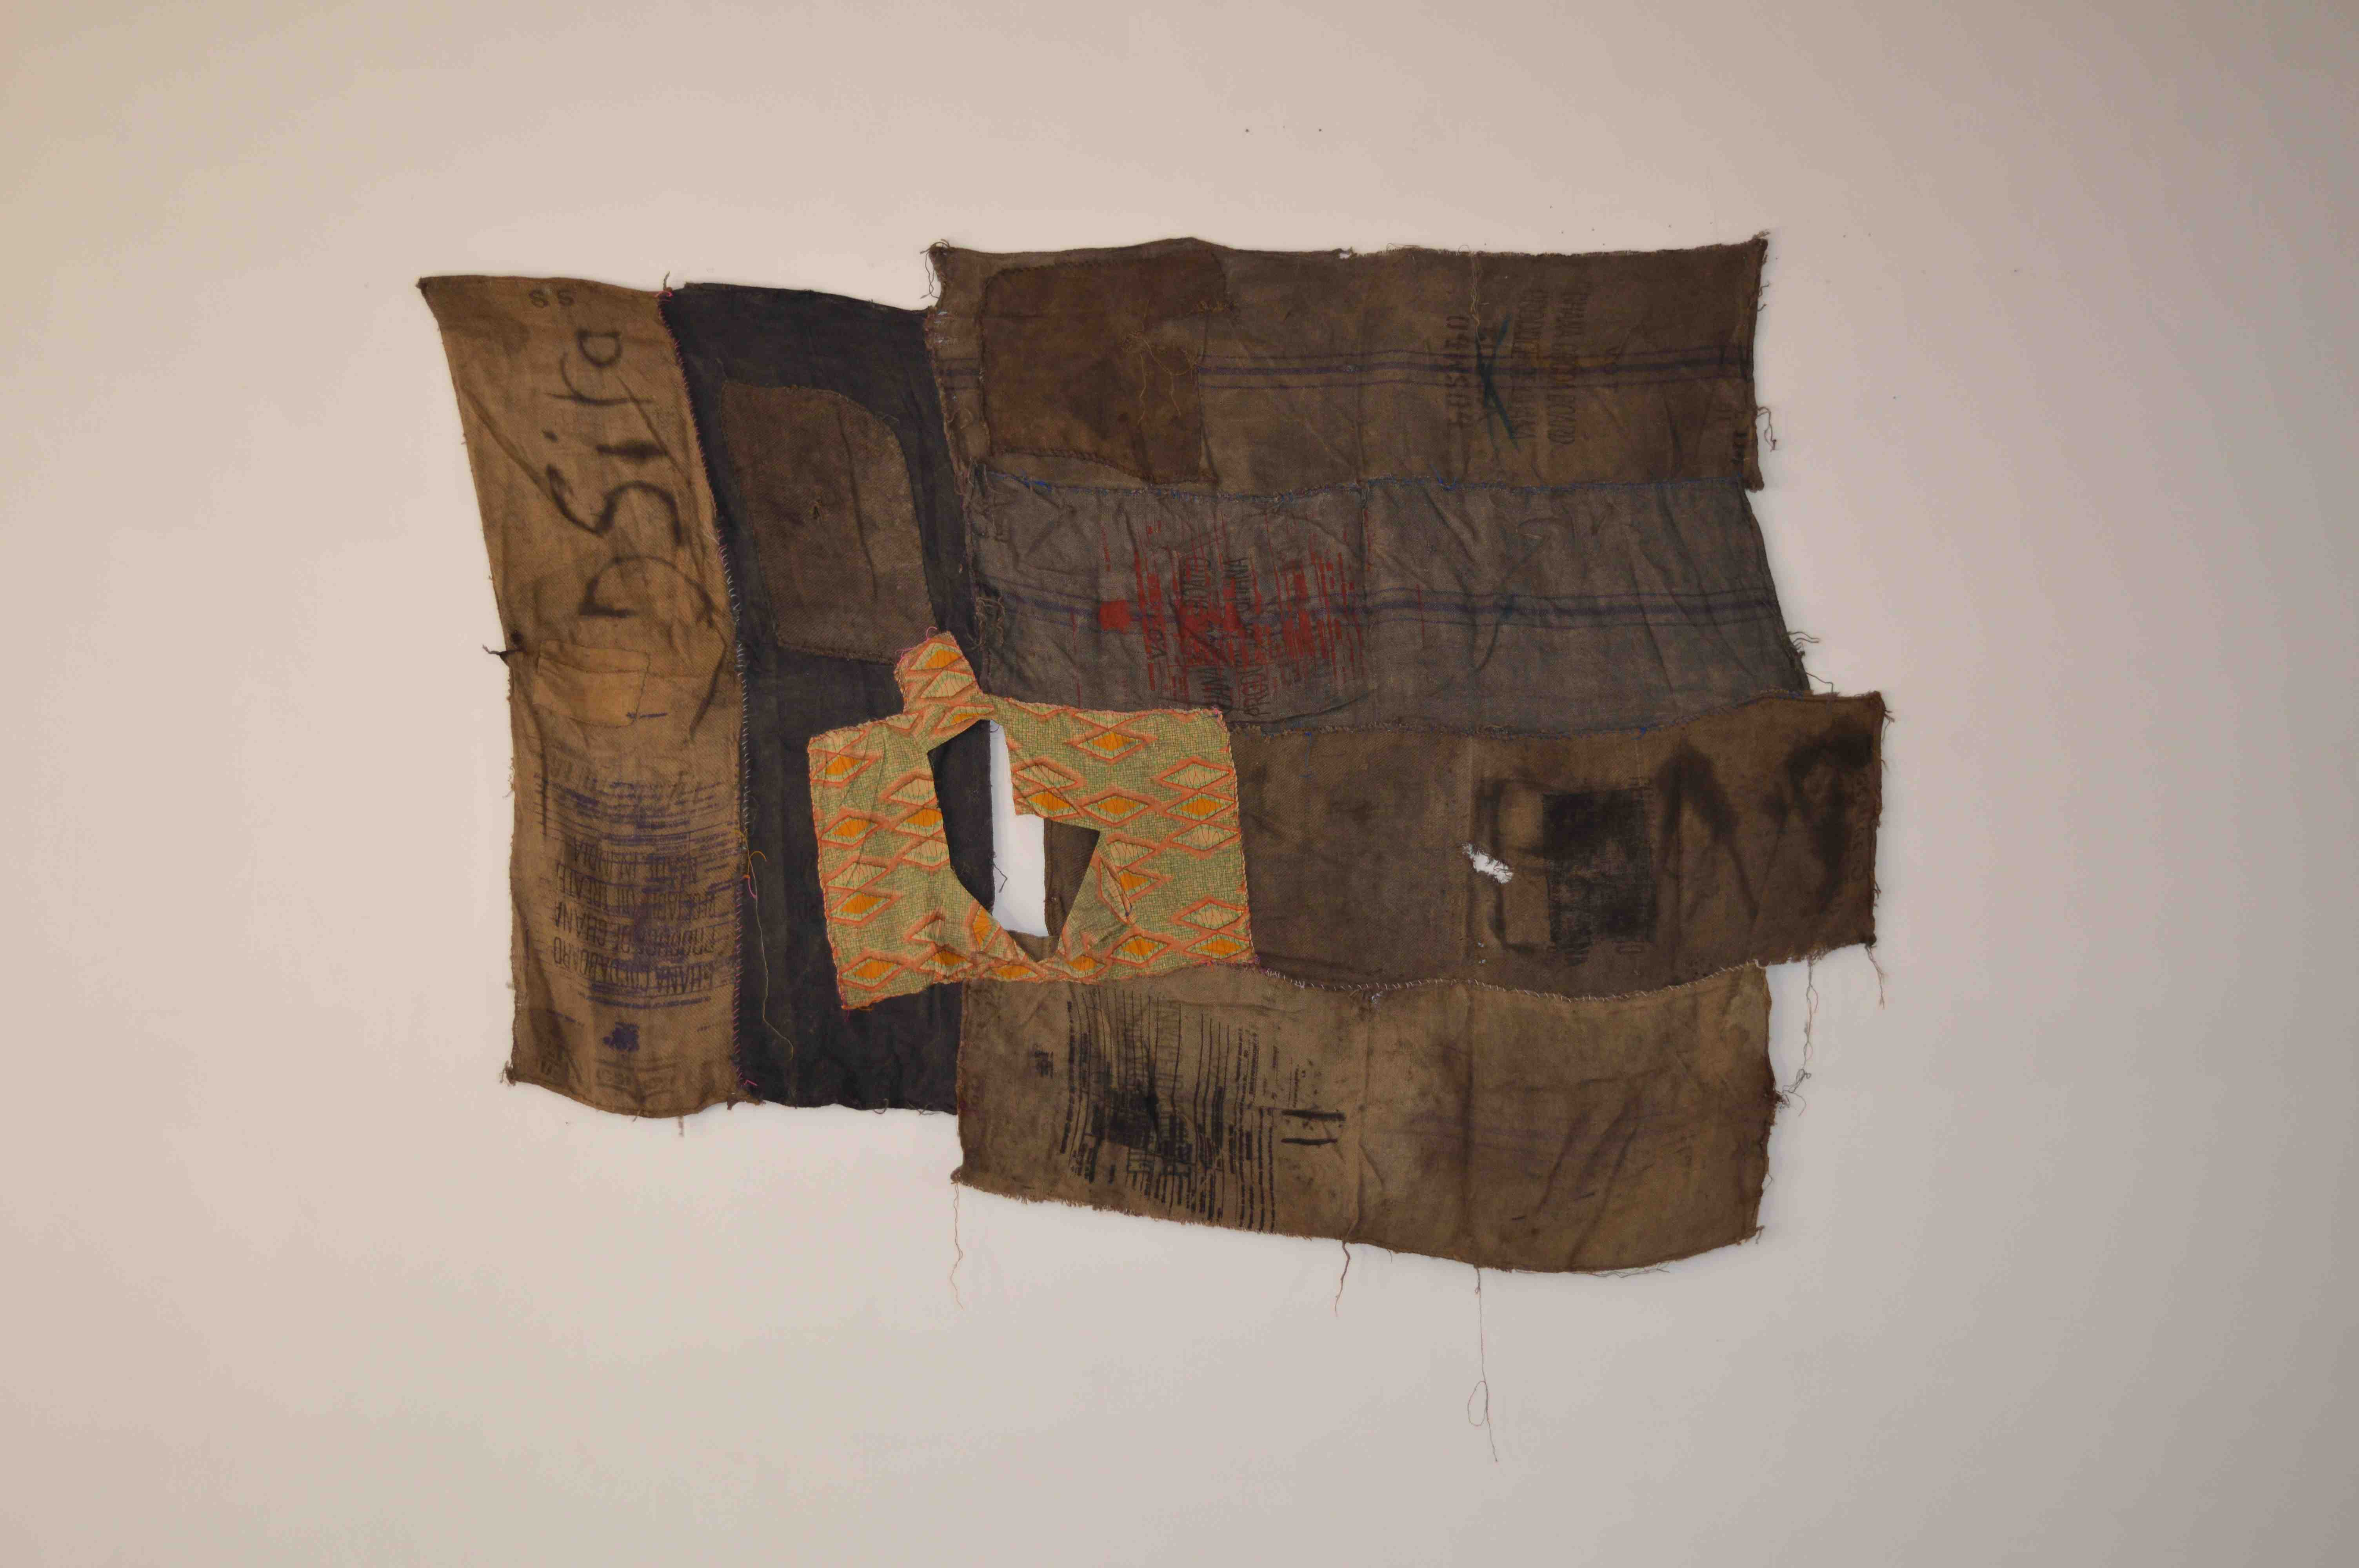 Ibrahim Mahama, Dsiya, 2015, Wax print and coal sacks on dyed sacks and coal sacks with screen prints and markings, 250  × 350  cm, Courtesy the artist and Modern Forms